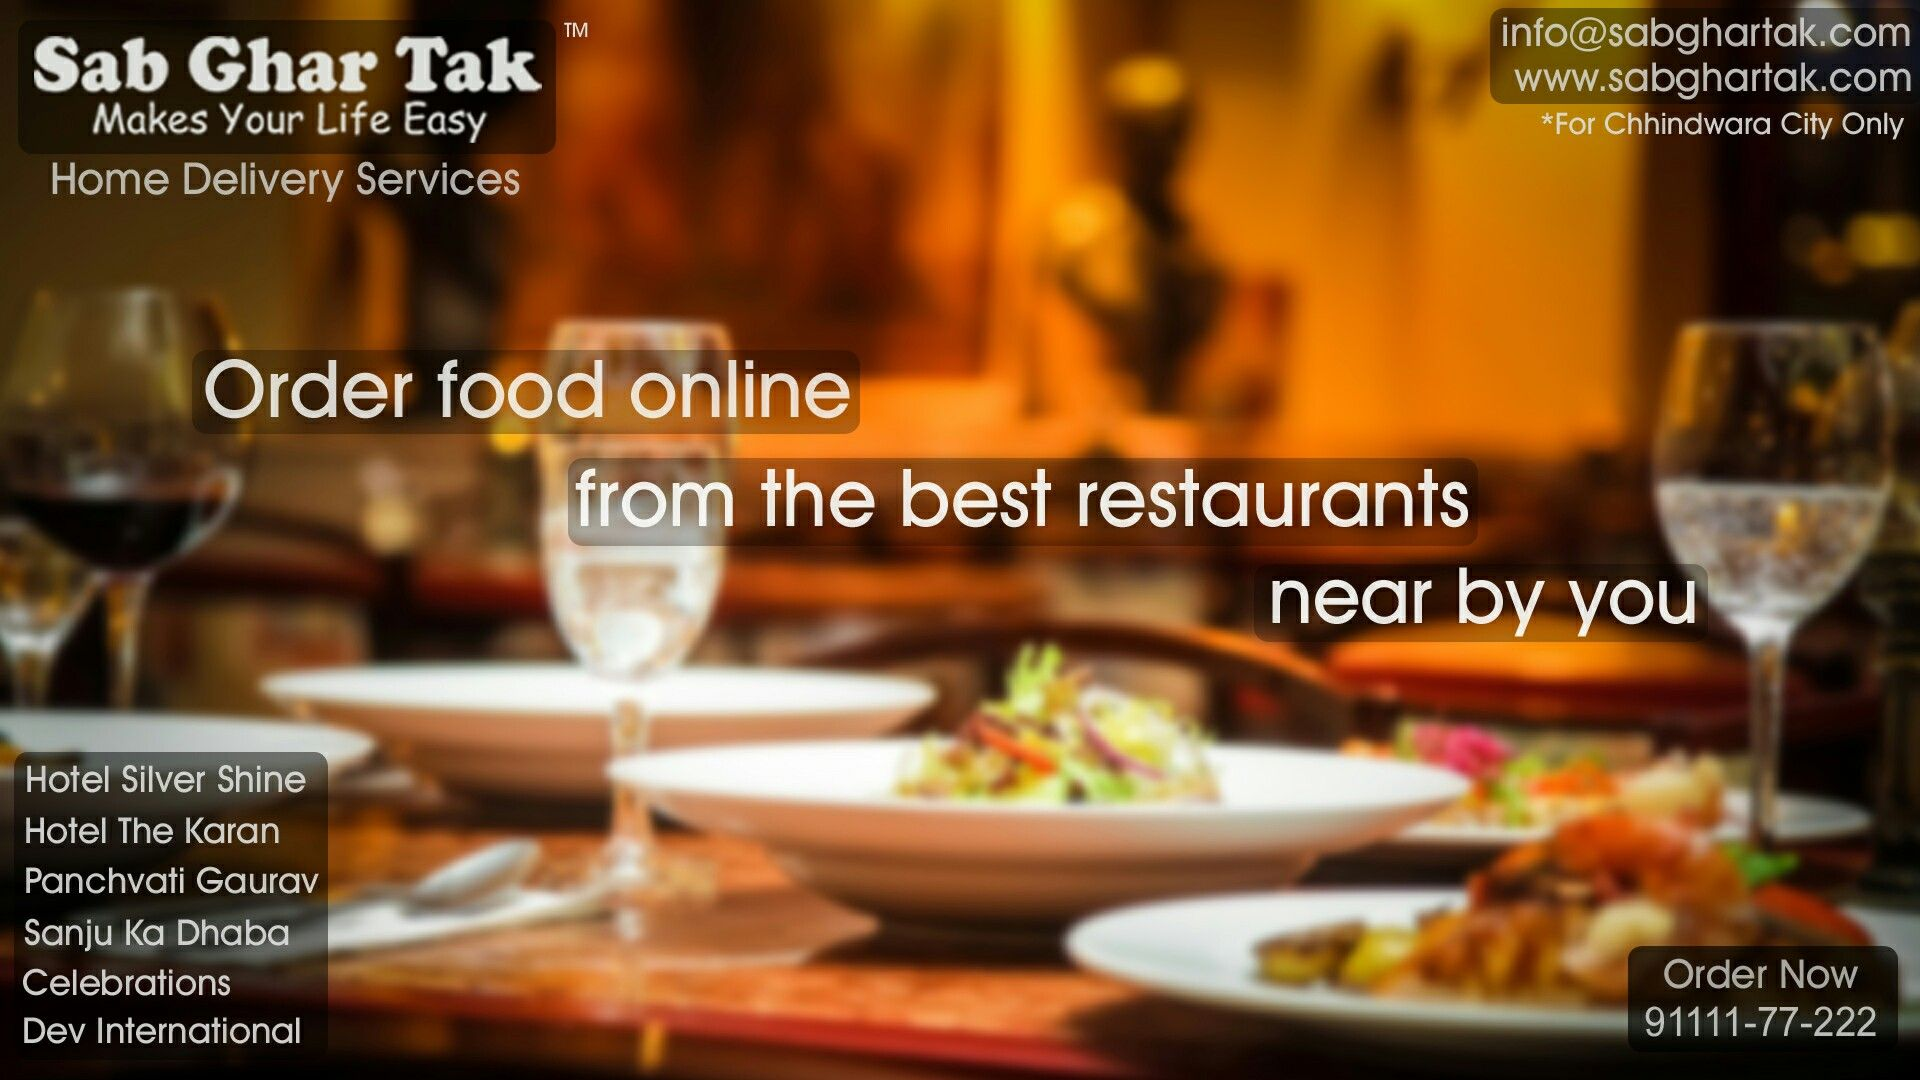 Hotel Silver Shine Enjoy Delicious Food From The Top Restaurant Of Chhindwara City